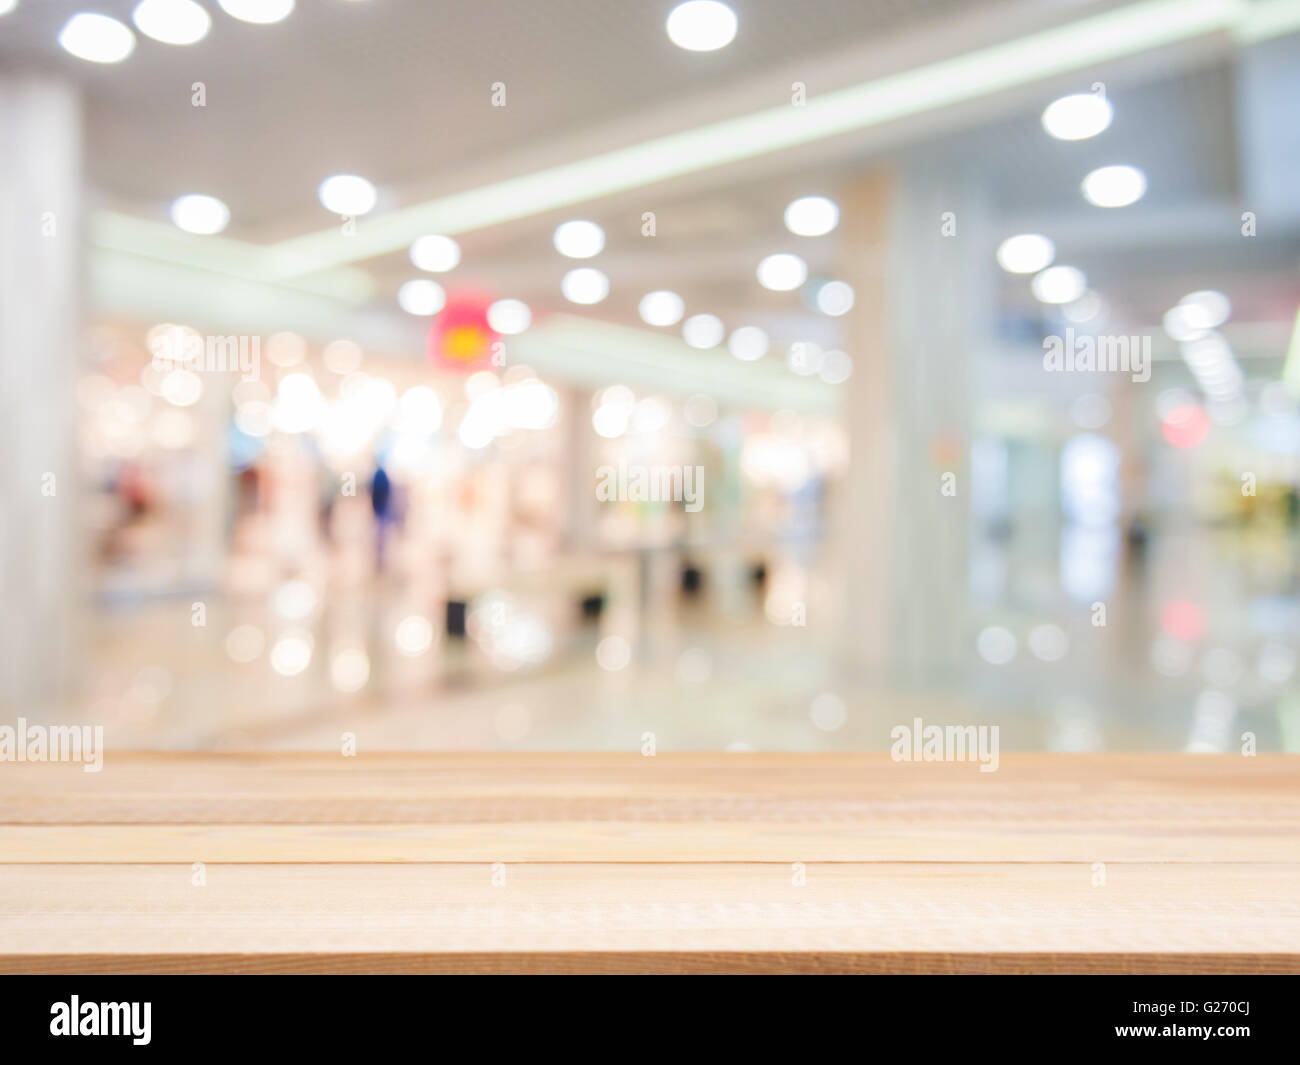 Wooden board empty table in front of blurred background. Perspective light wood over blur in shopping mall - can - Stock Image